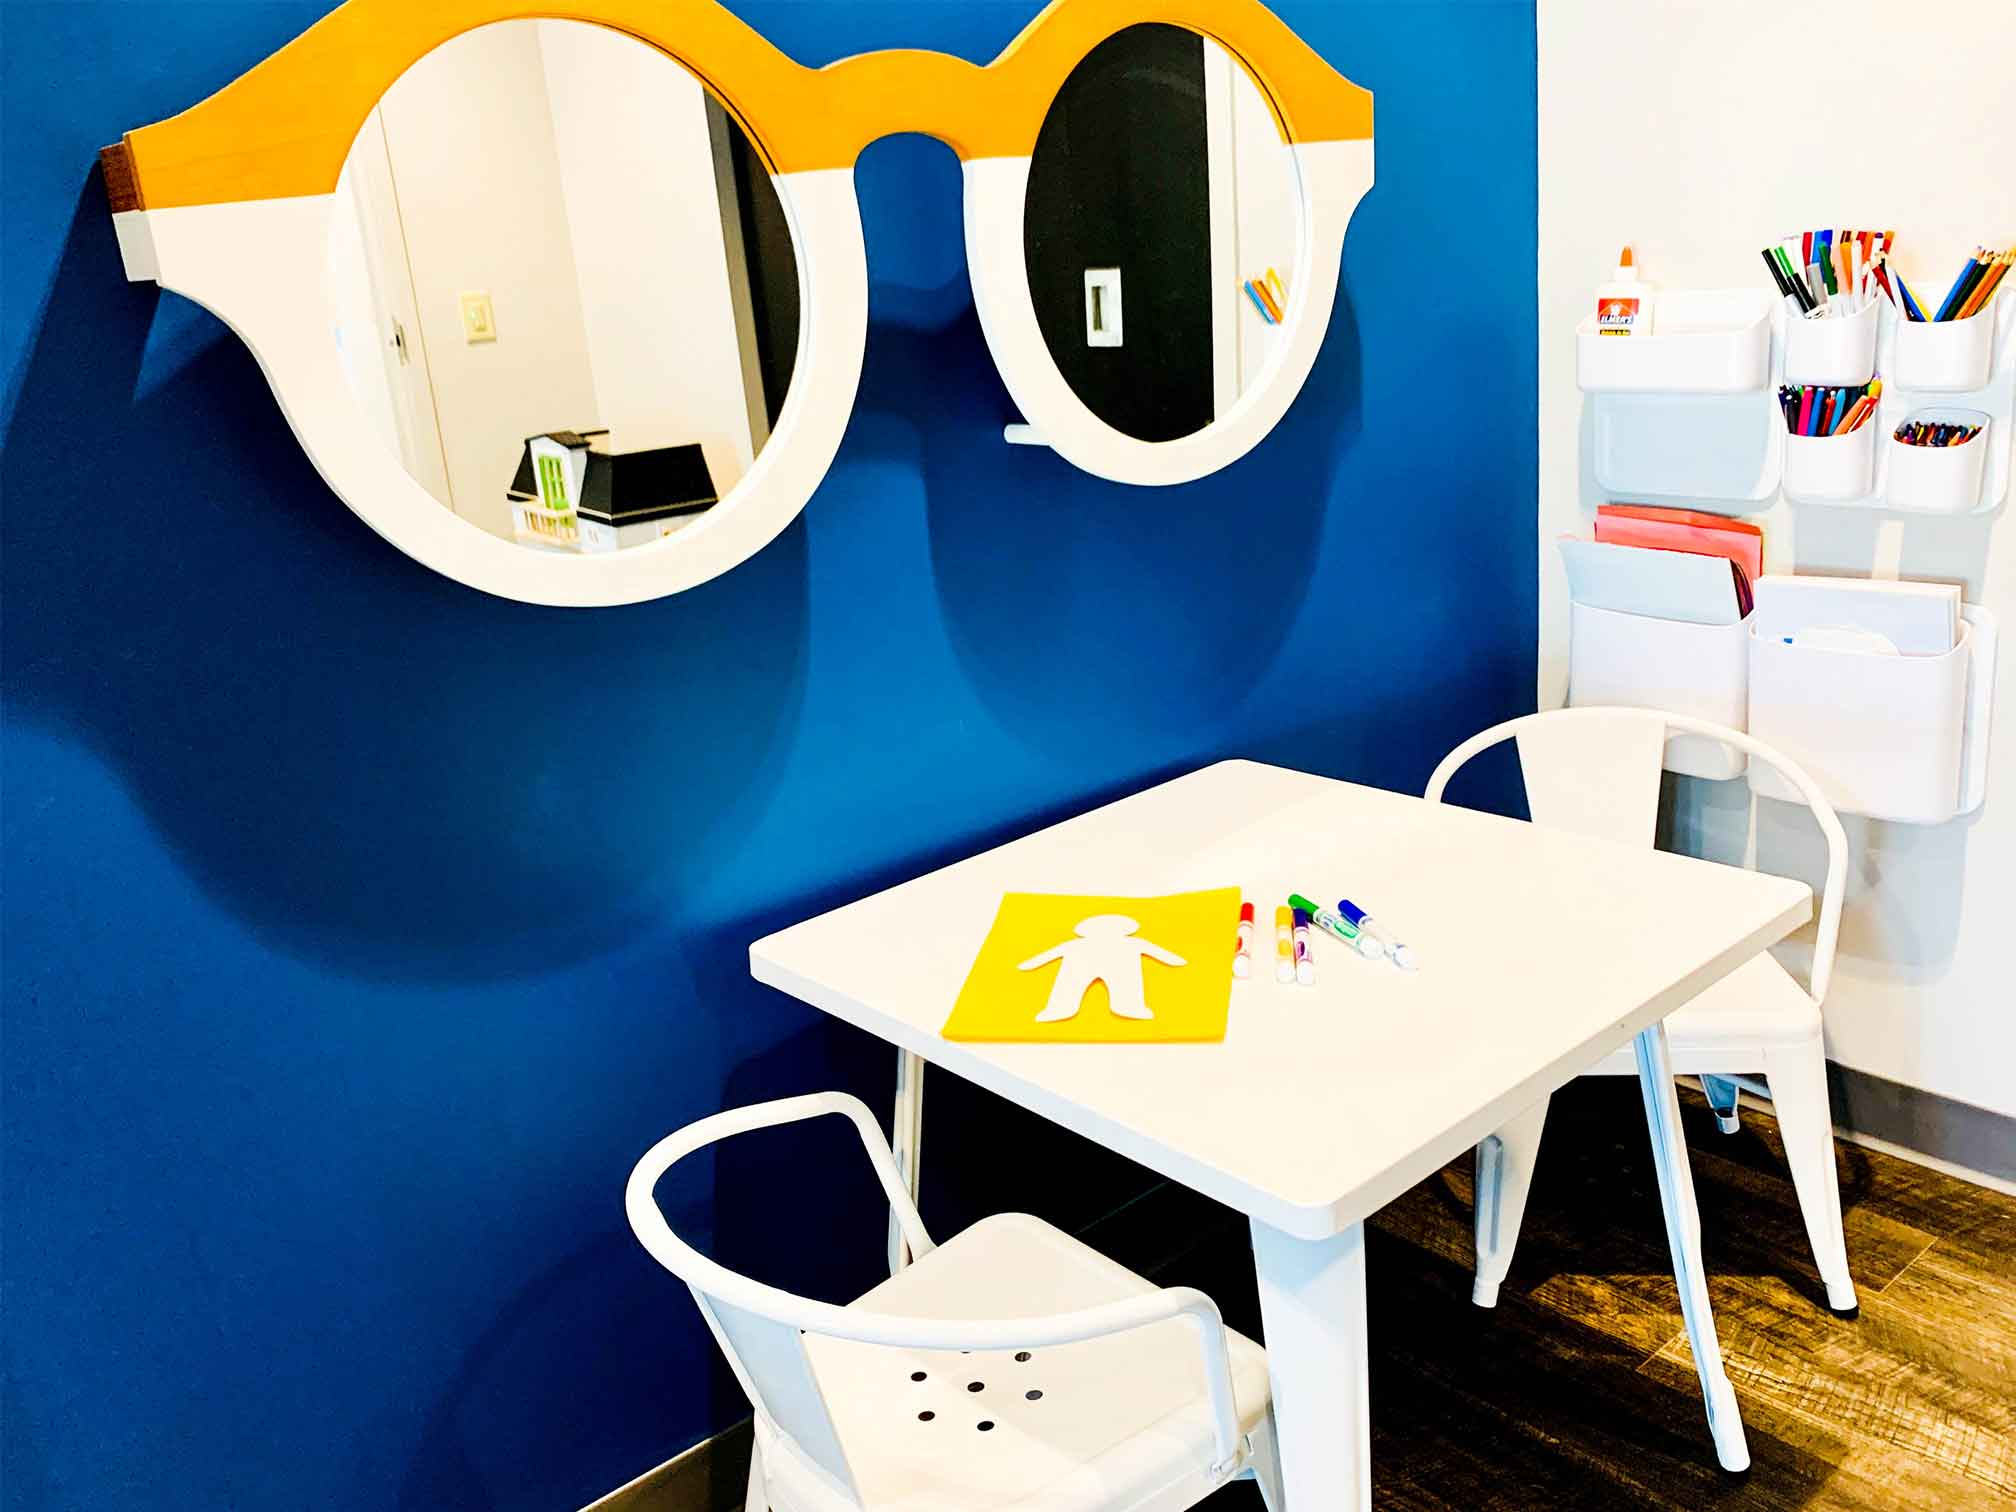 Room with a table and chairs with a big pair of mirrored glasses and craft supplies, decorated in bright colors for child counseling and therapy. Your child can get help in play therapy in Ohio and Indiana for child counseling with ThrivePointe child therapists